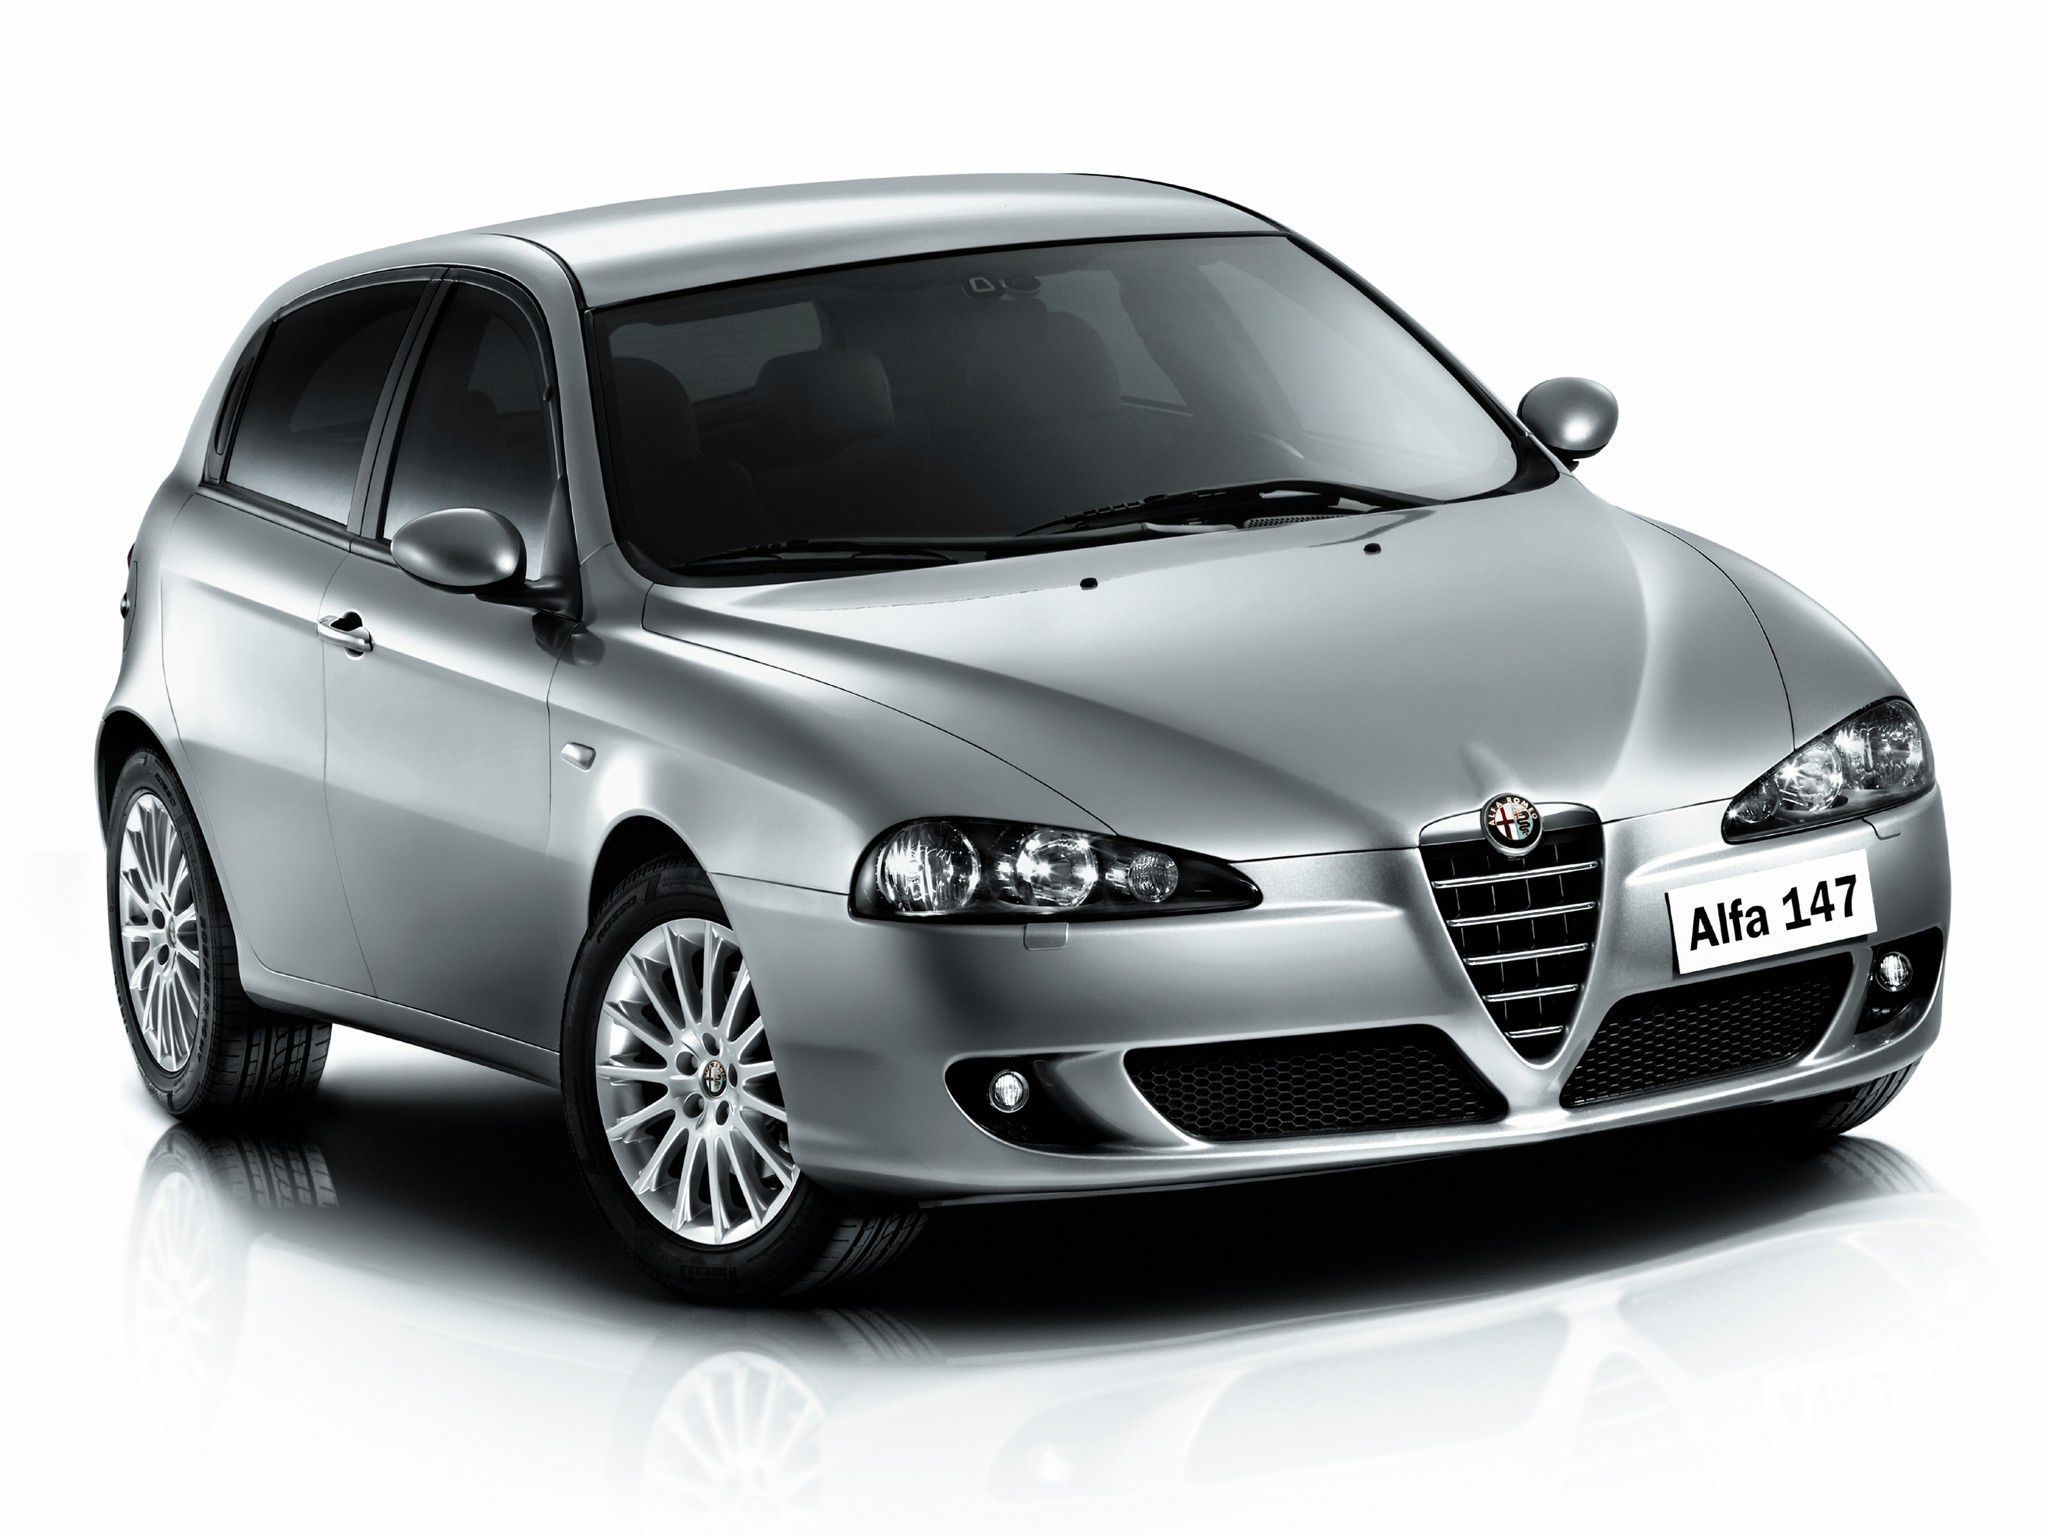 Alfa Romeo 147 Photos